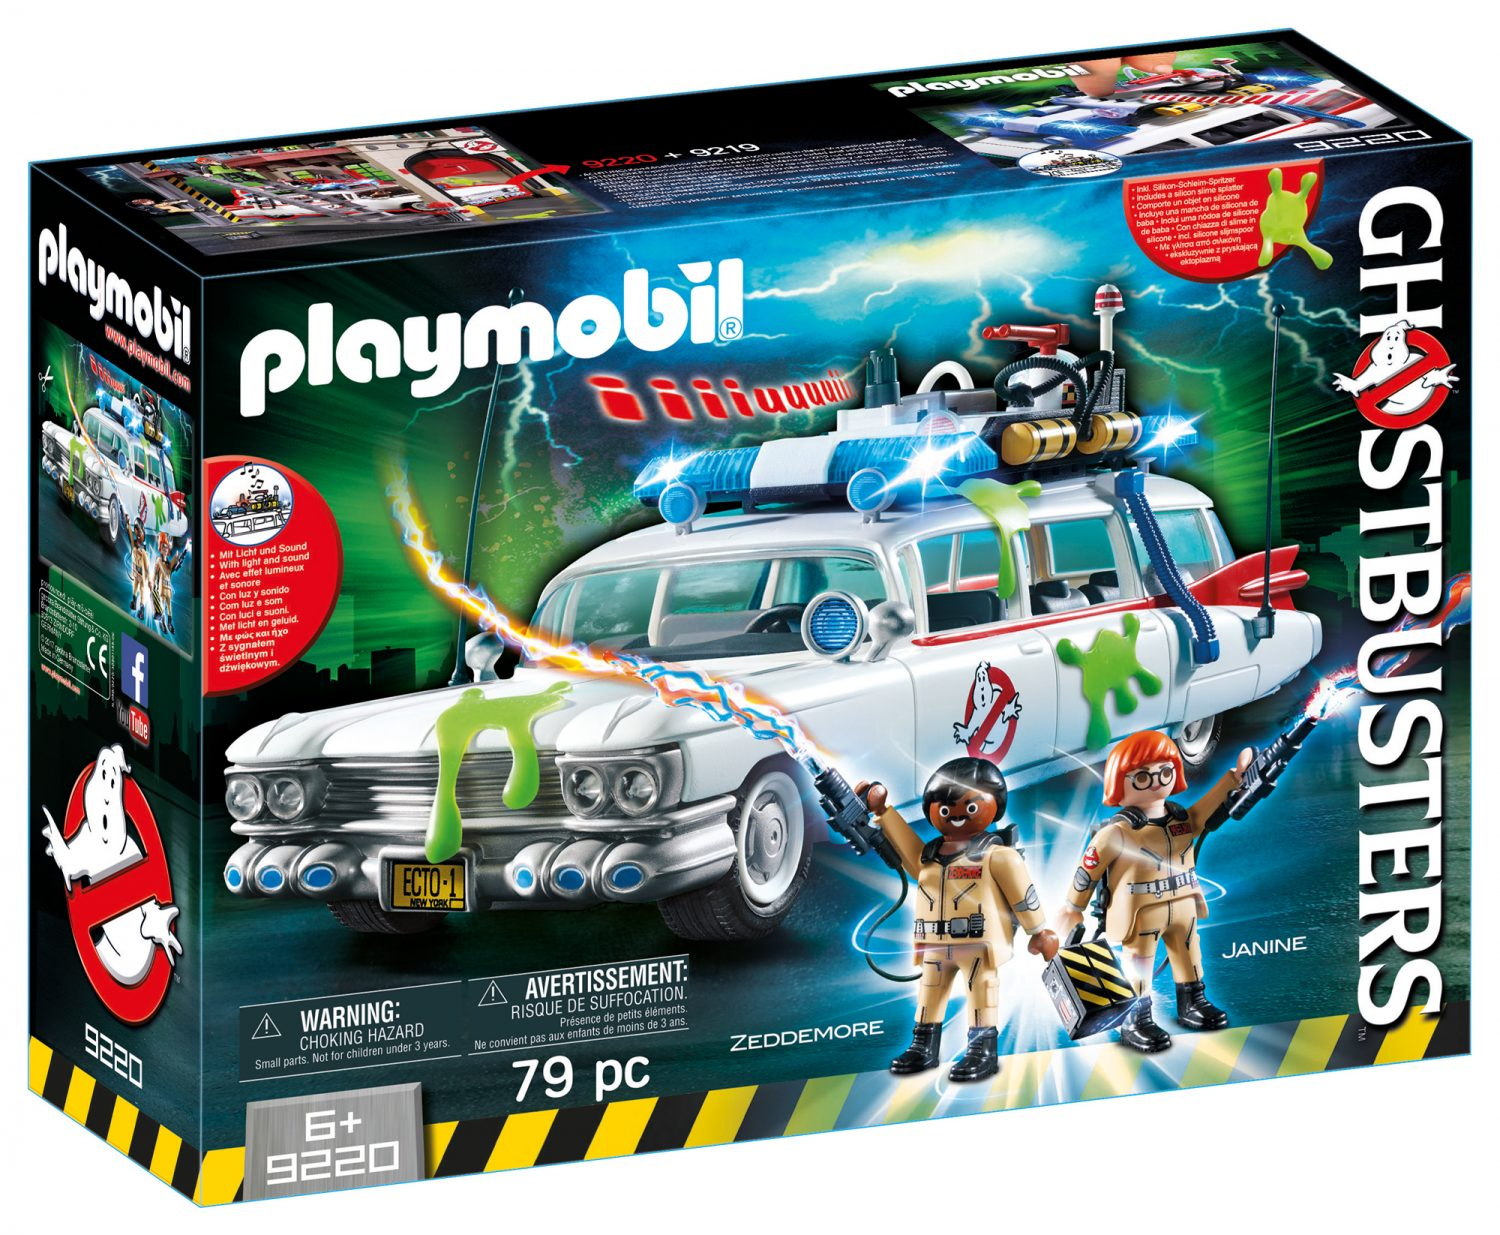 Playmobil Ghostbusters Sets Coming May 15th To Amazon